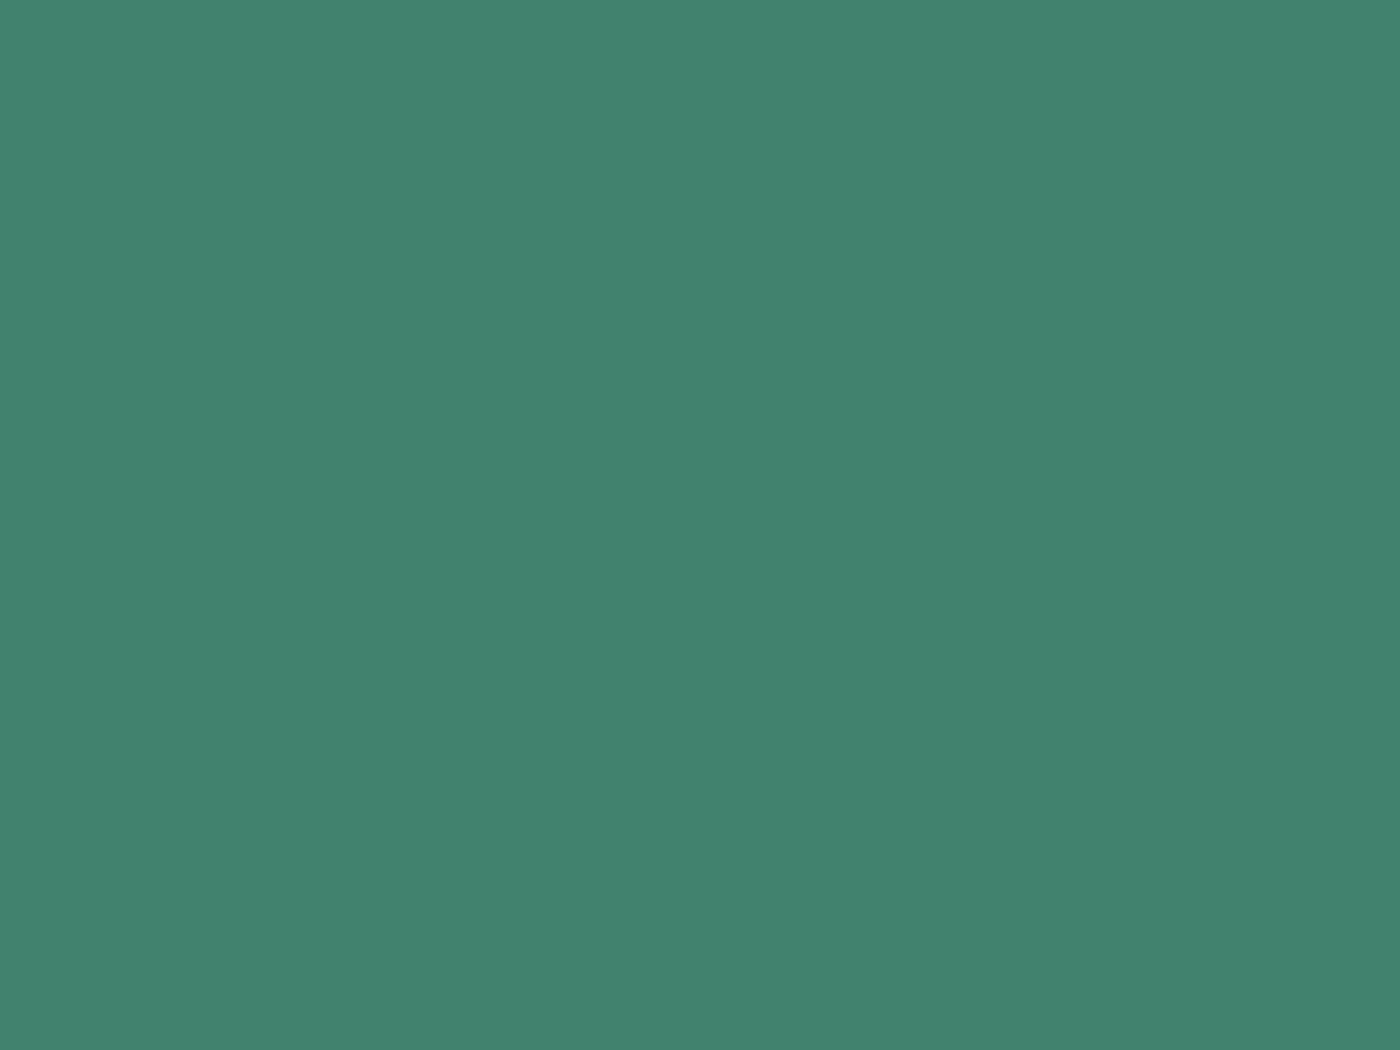 1400x1050 Viridian Solid Color Background